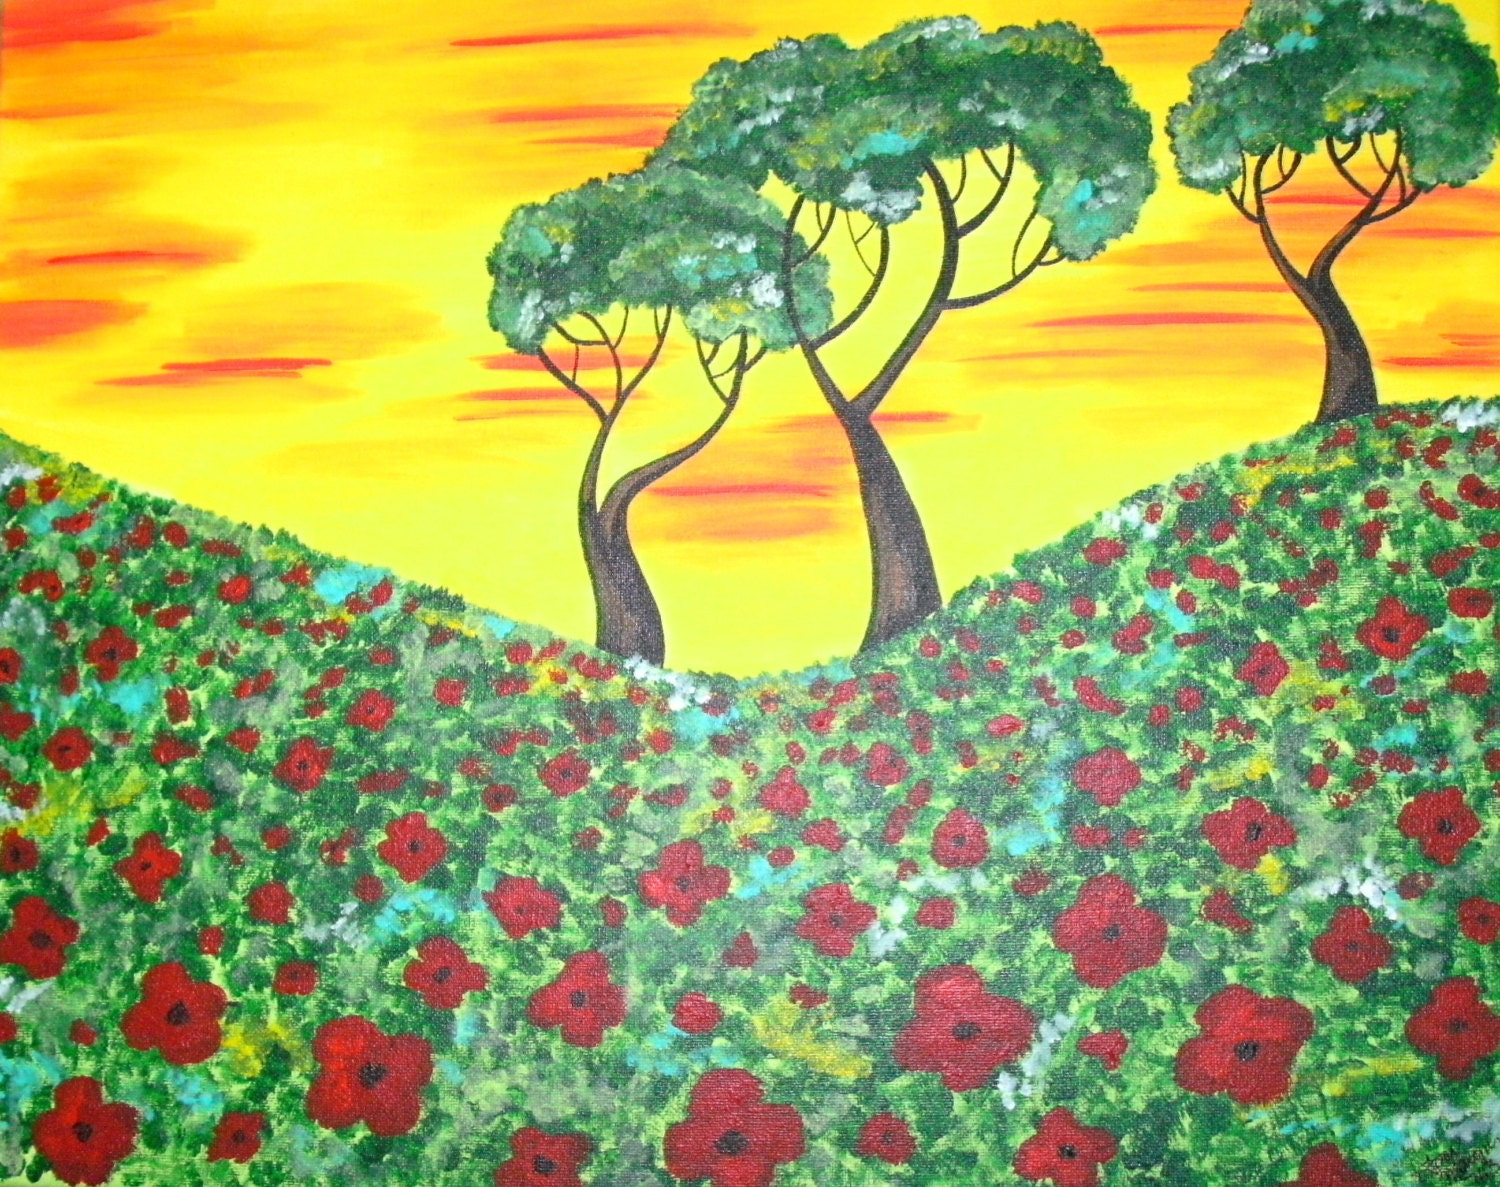 Custom Poppy Painting Poppy Field and Trees Poppies